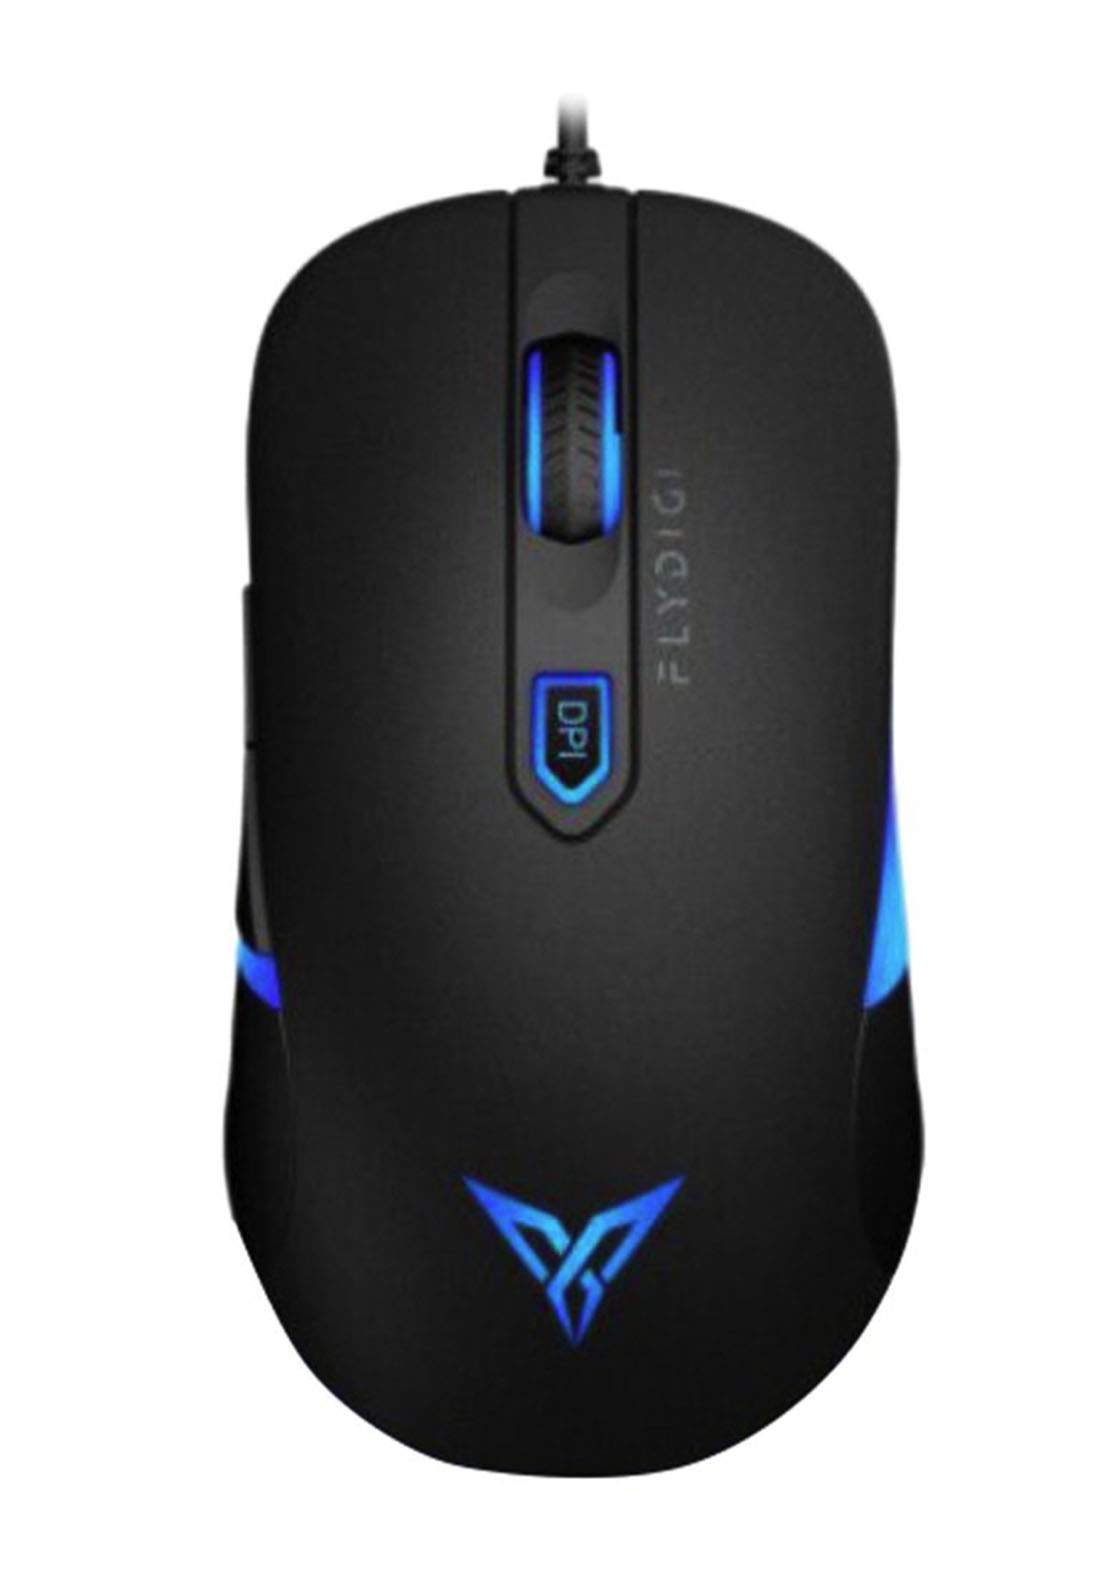 Flydigi M1 Pc Wired Gaming Mouse - Black